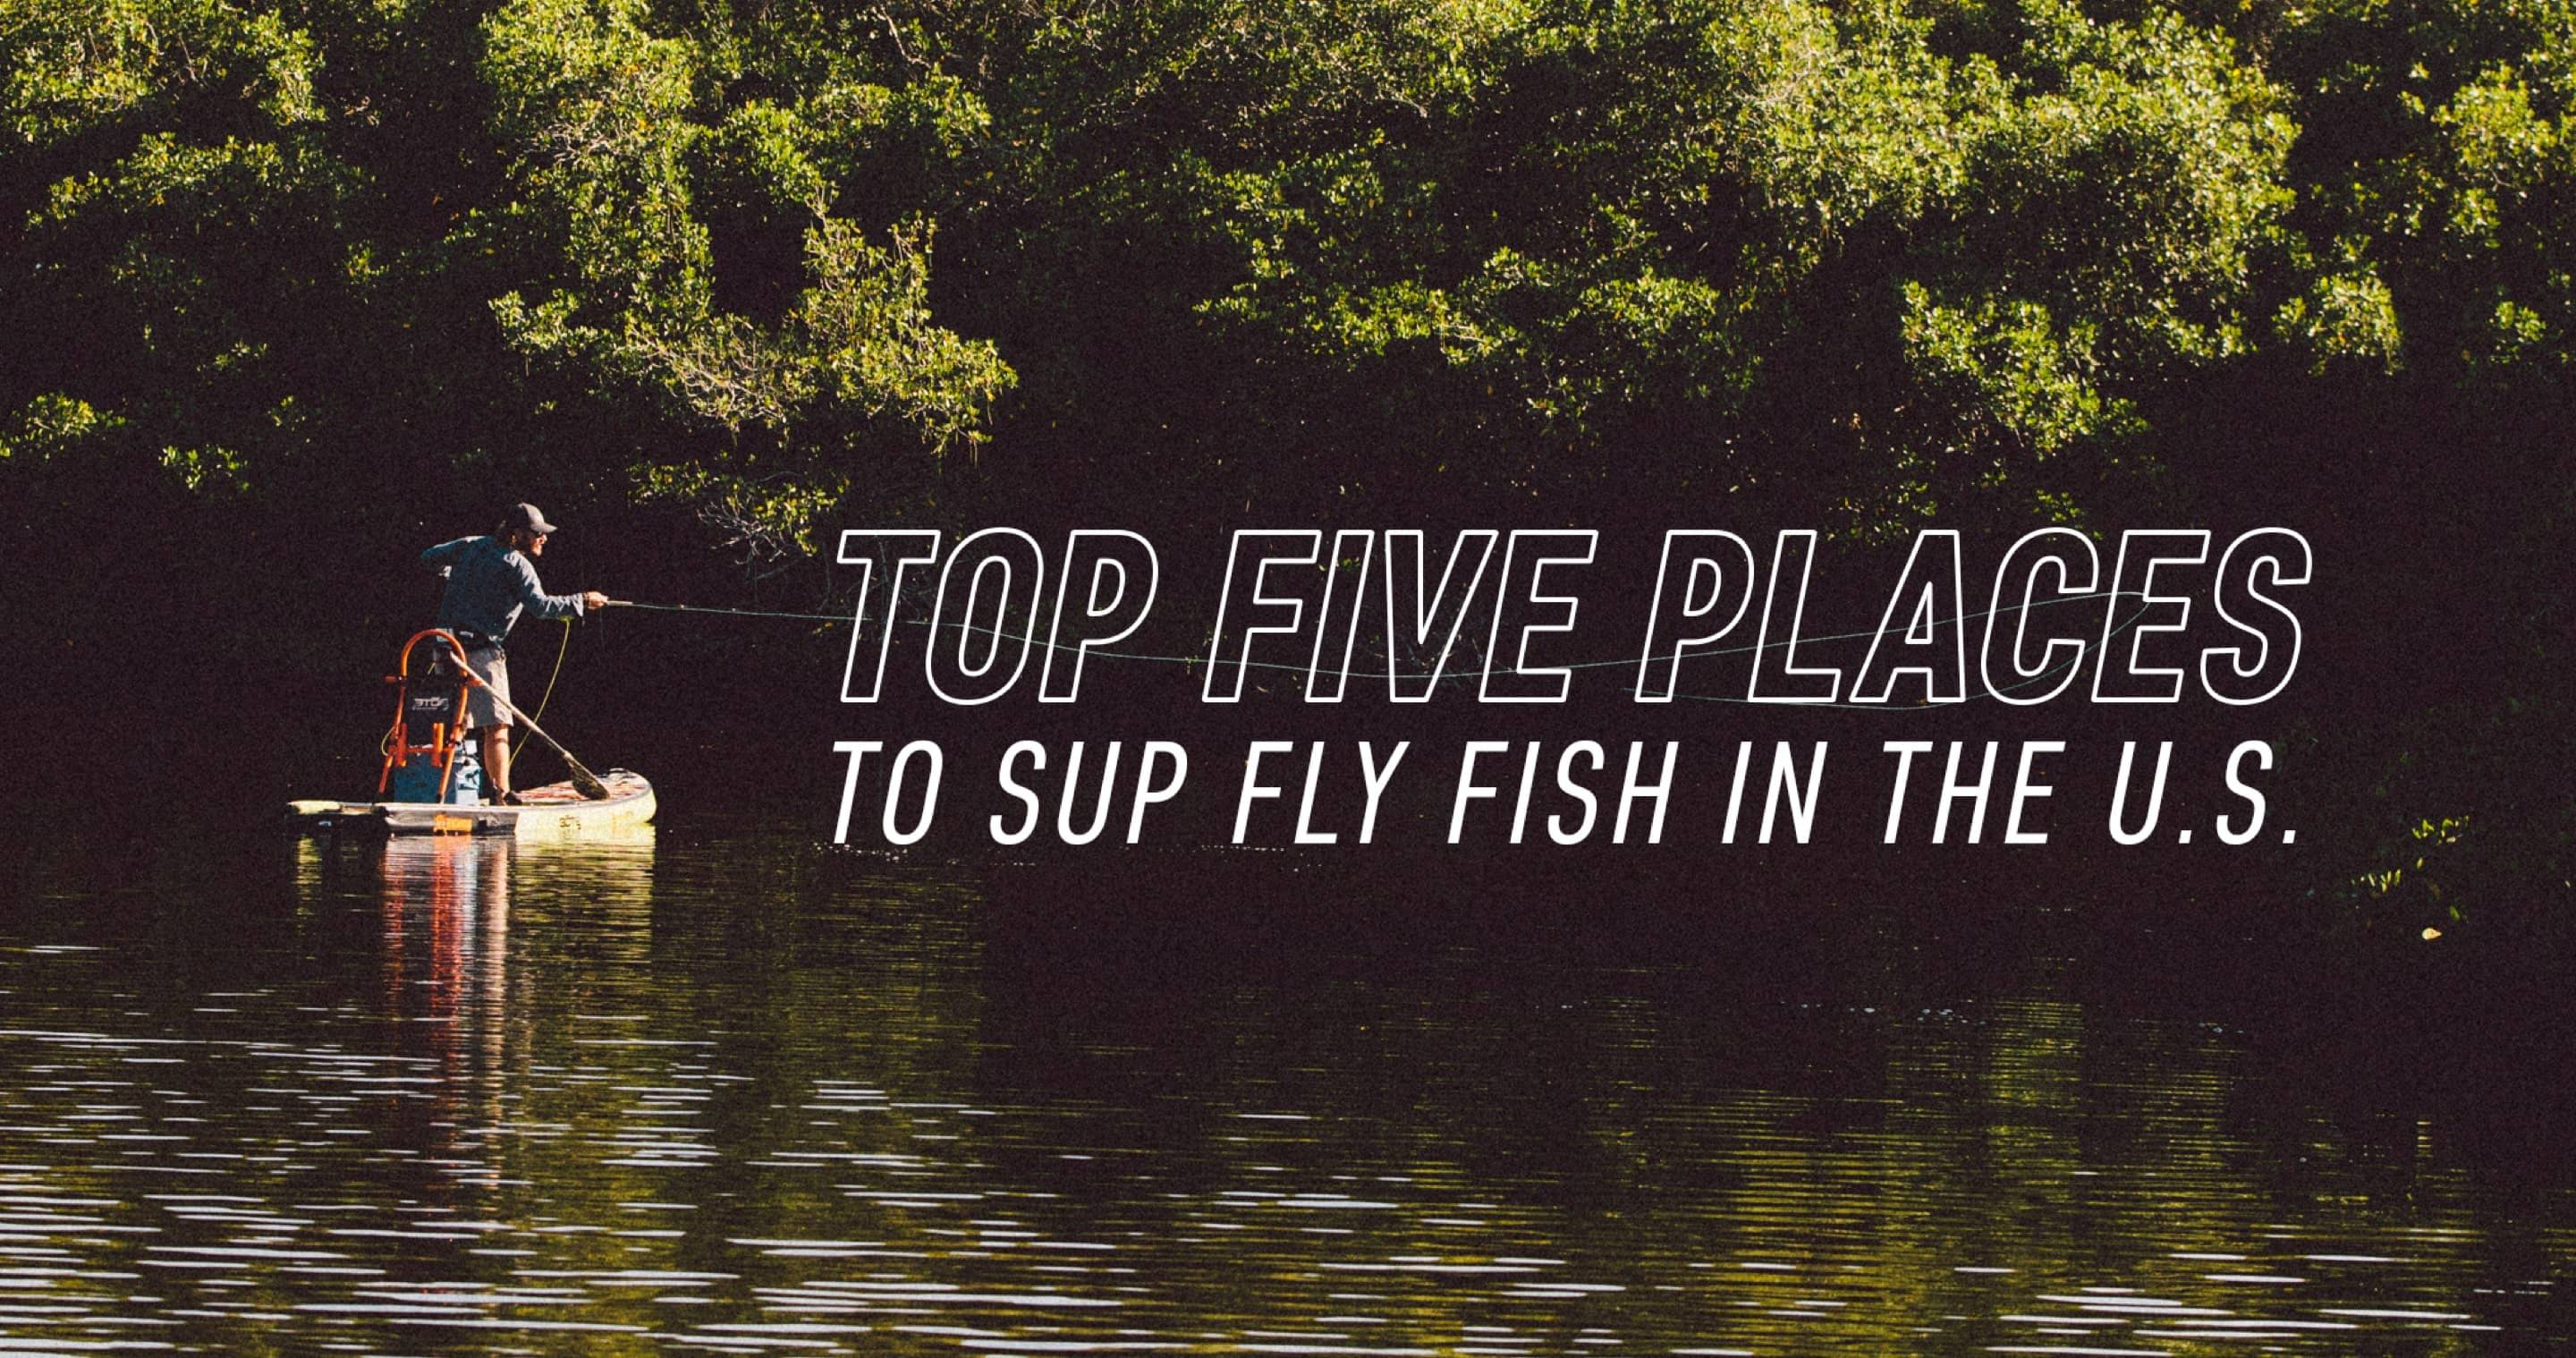 Top Fie Places to SUP Fly Fish in the US